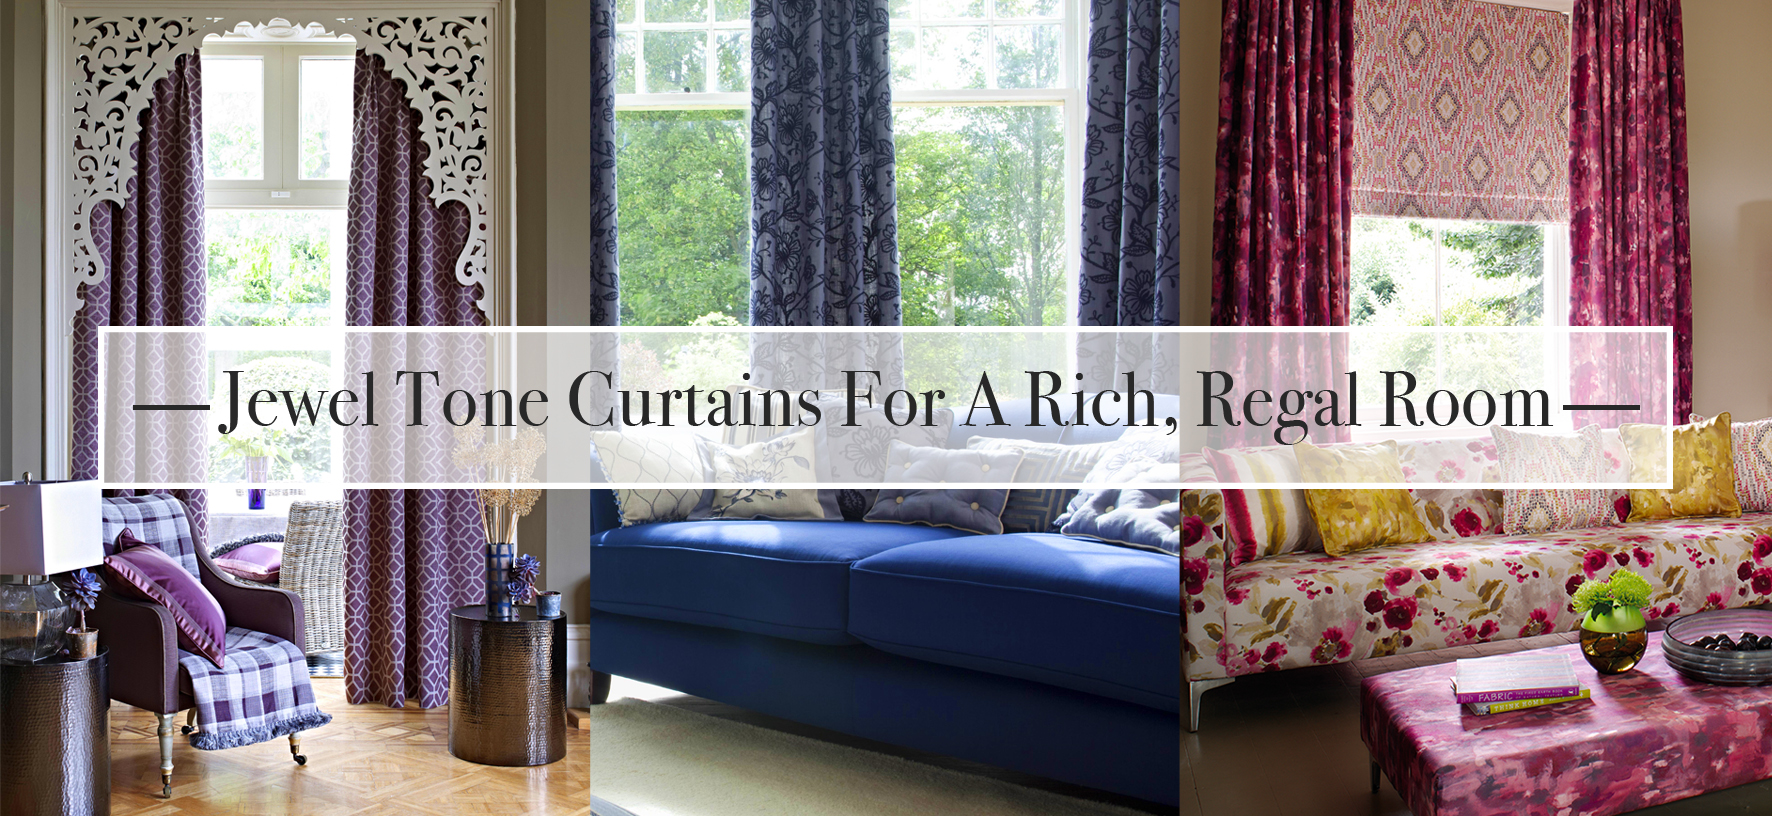 jewel tone curtains for a rich regal room